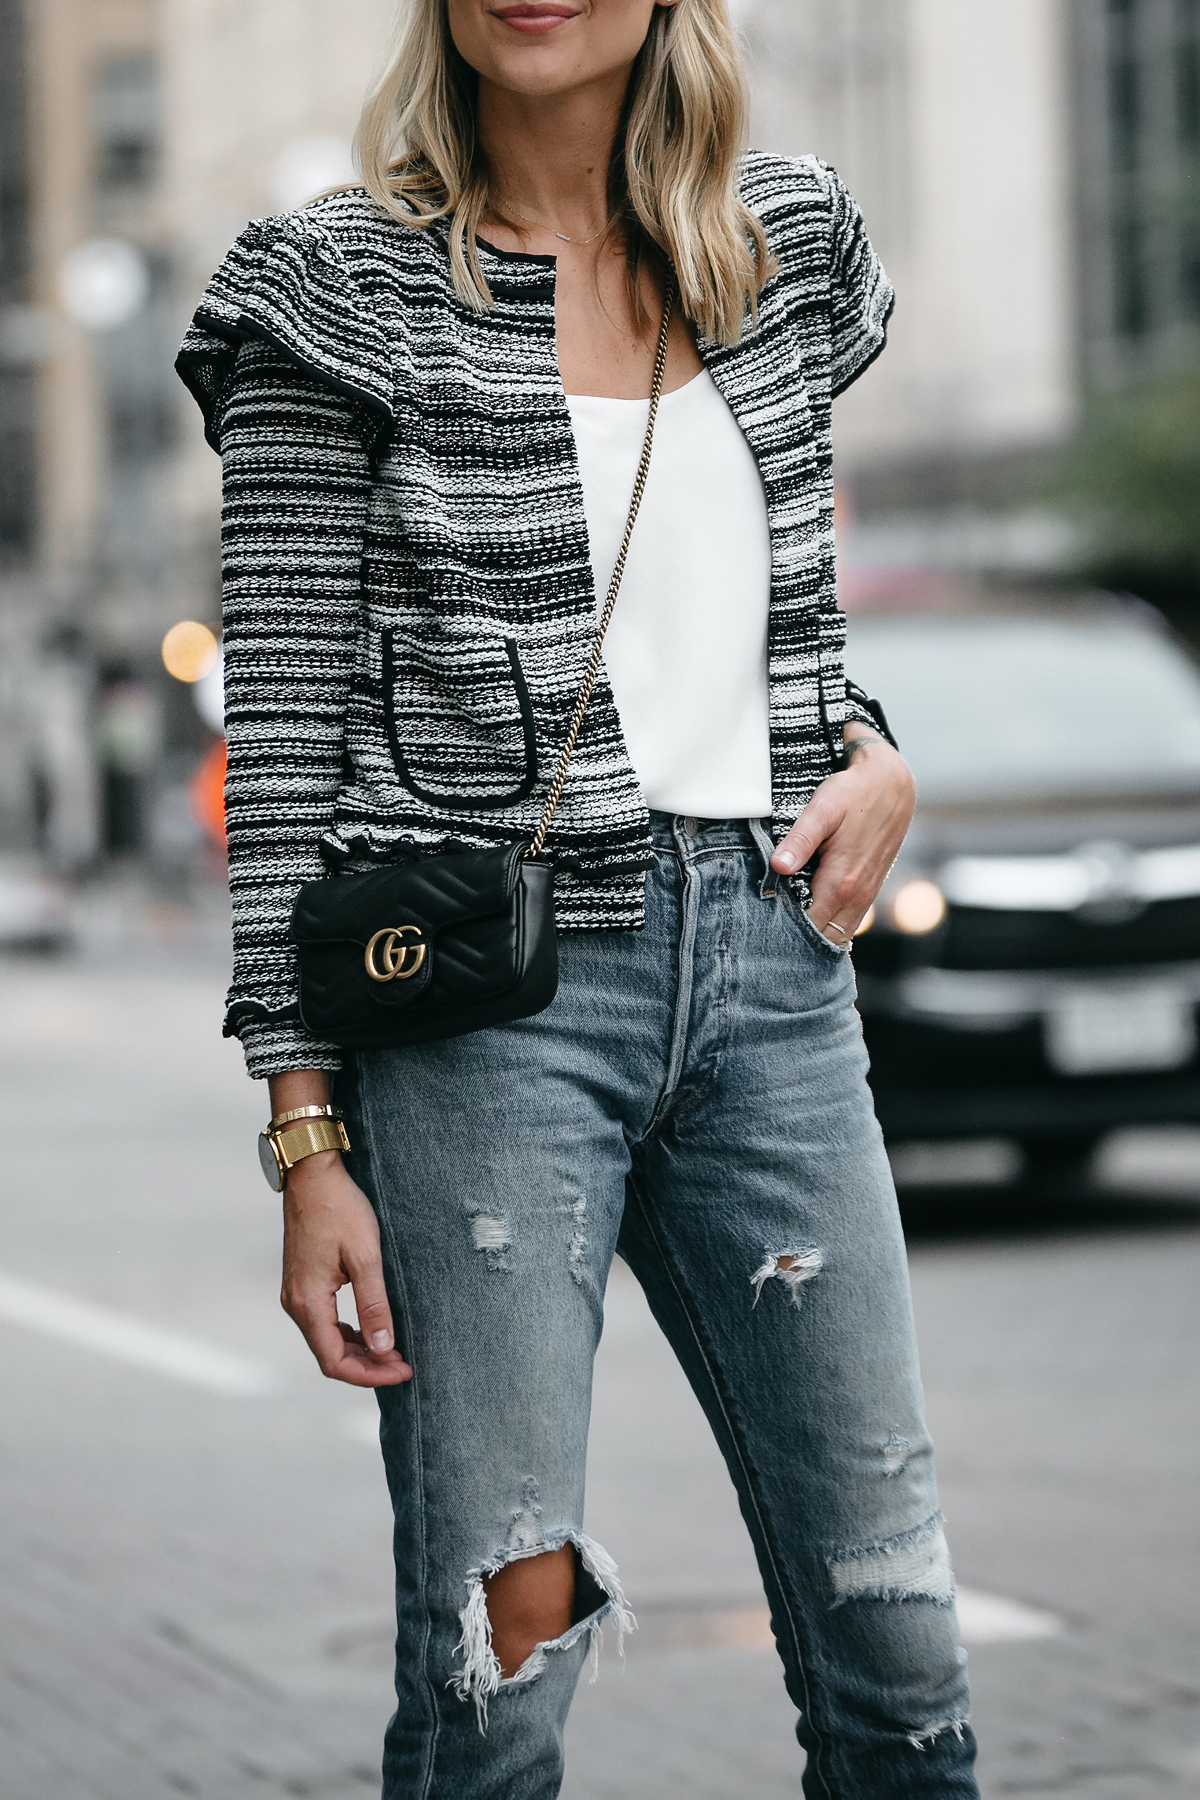 Club Monaco Tweed Jacket Denim Ripped Jeans Gucci Mini Marmont Handbag Fashion Jackson Dallas Blogger Fashion Blogger Street Style